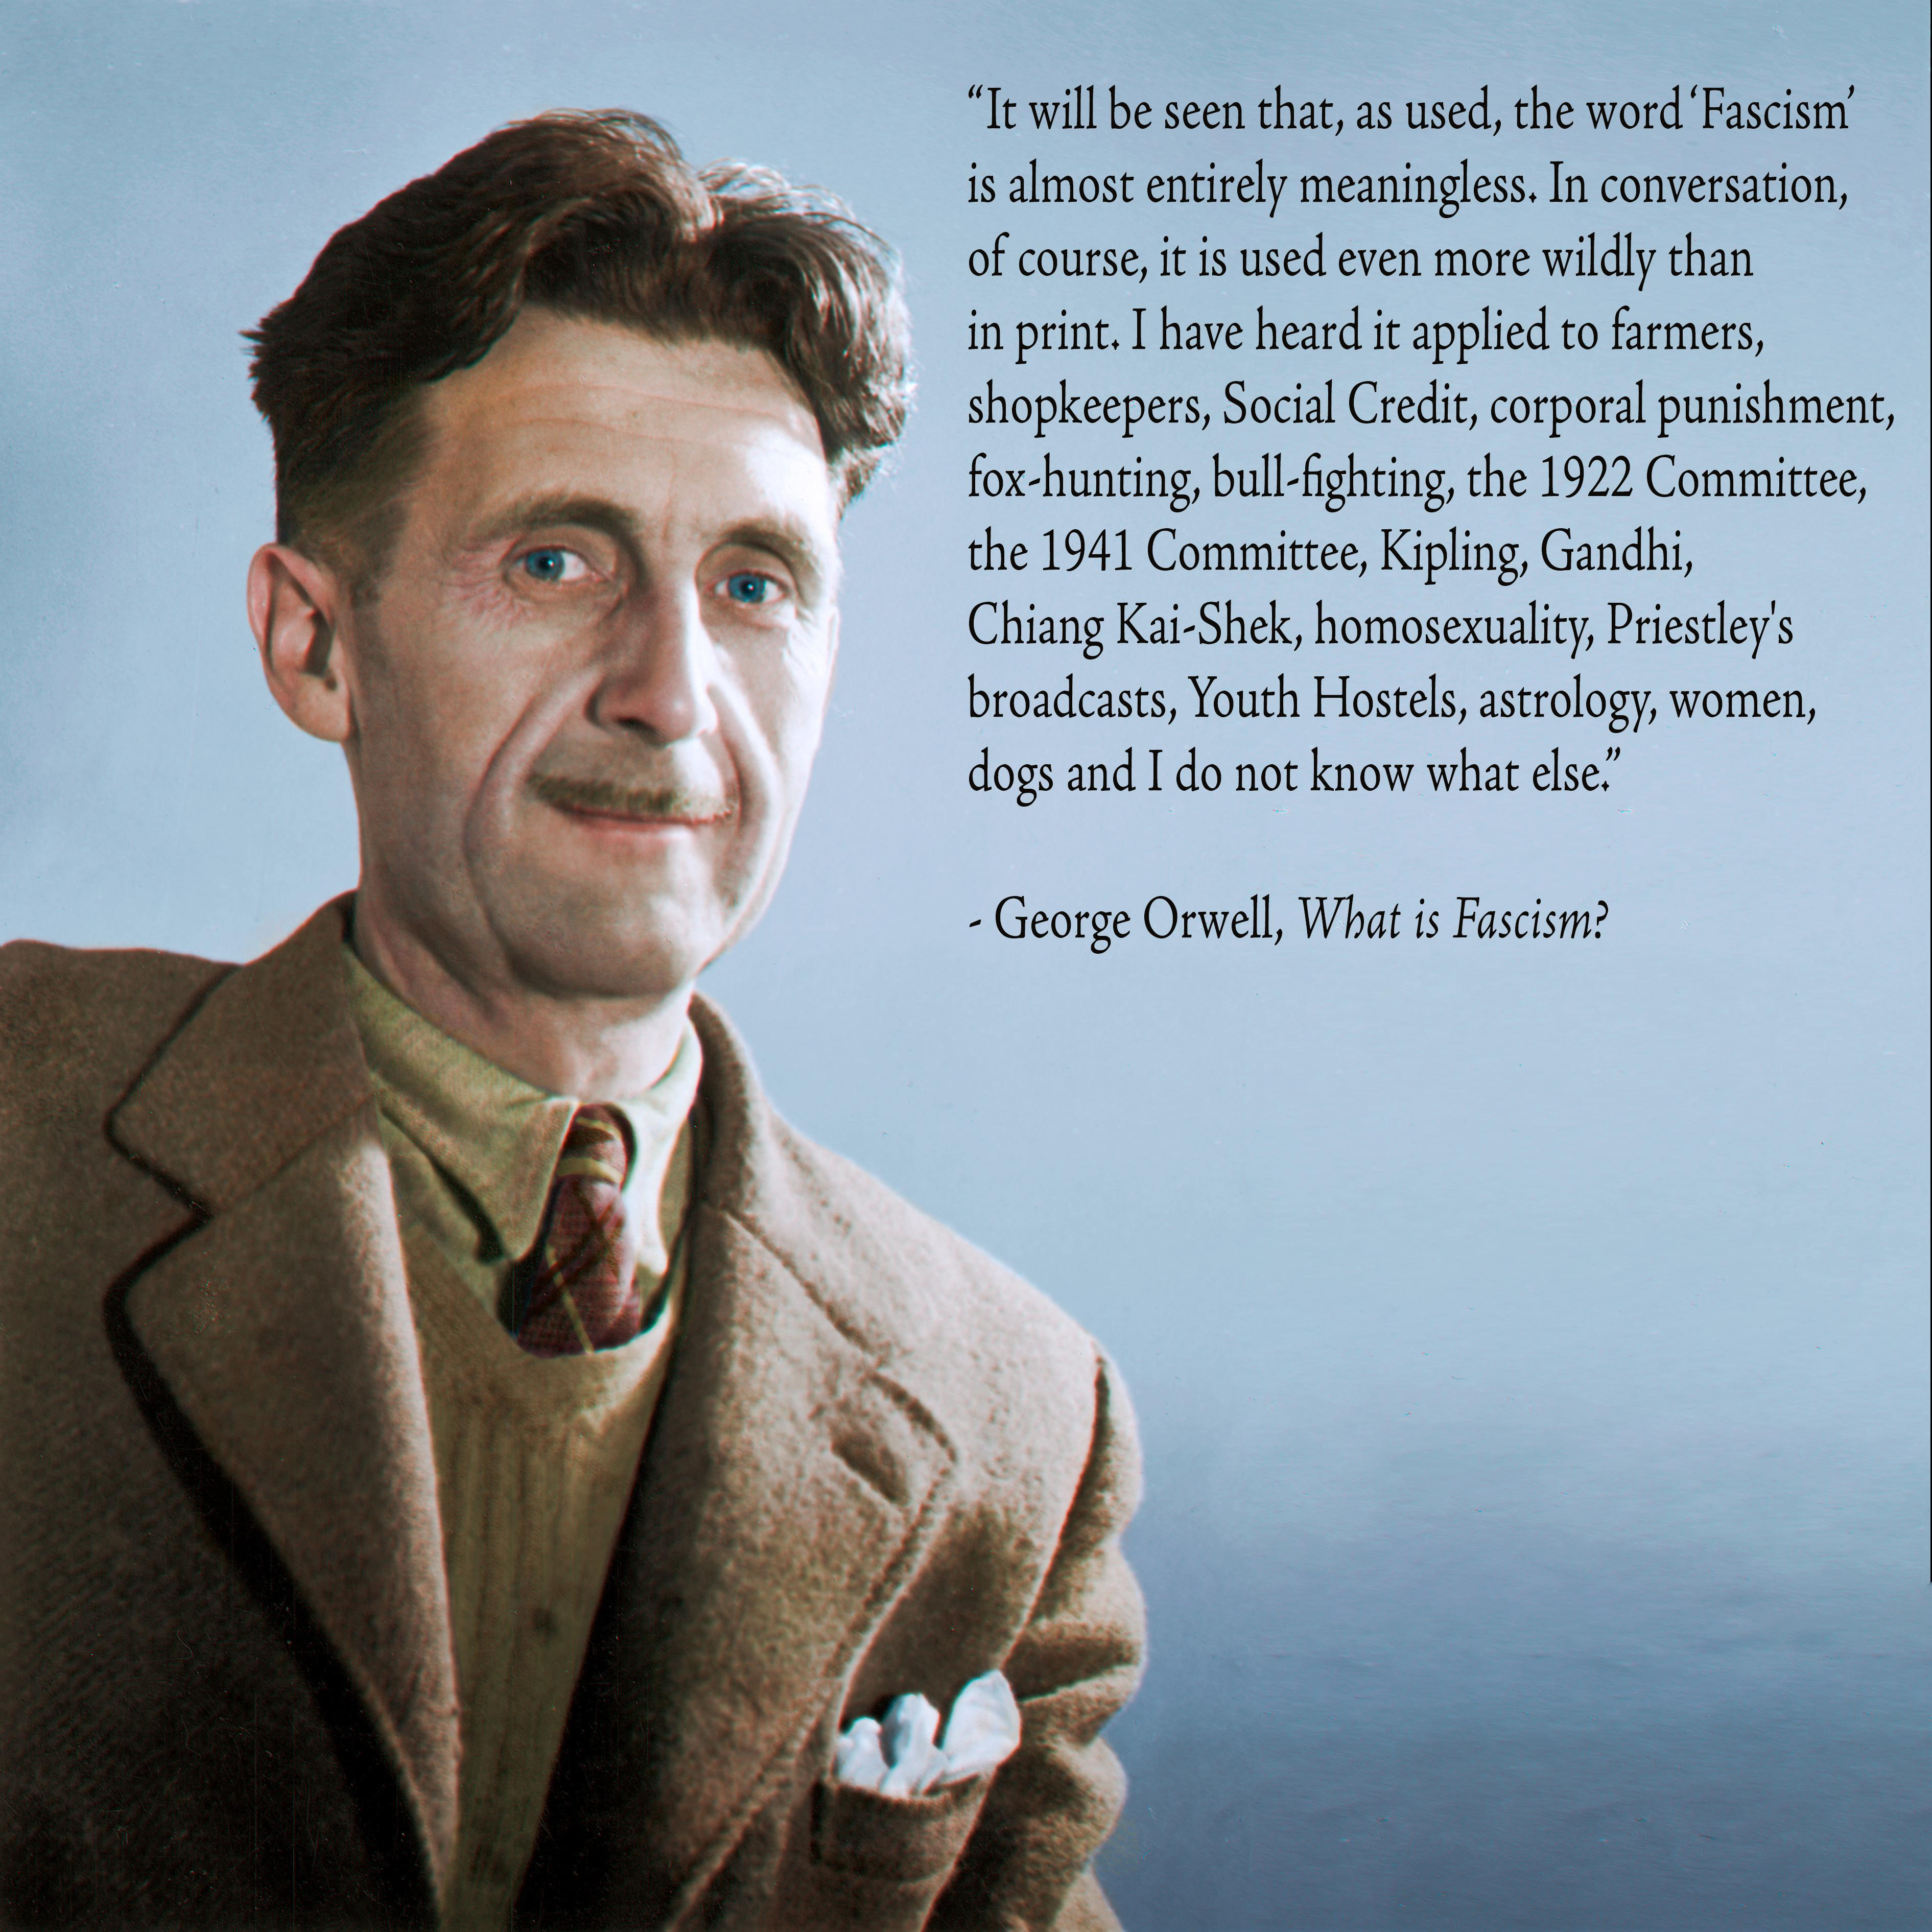 """""""It will be seen that, as used, the word 'Fascism' is almost entirely meaningless. In conversation, of course, it is used even more wildly than in print. I have heard it applied to farmers, shopkeepers, Social Credit, corporal punishment, fOX'hunting, bull'fighting, the 1922 Committee, the 1941 Committee, Kipling, Gandhi, Chiang Kai'Shek, homosexuality, Priestley's broadcasts, Youth Hostels, astrology, women, / do s andIdo not know what else."""" , George Orwell, What is Fascism? https://inspirational.ly"""